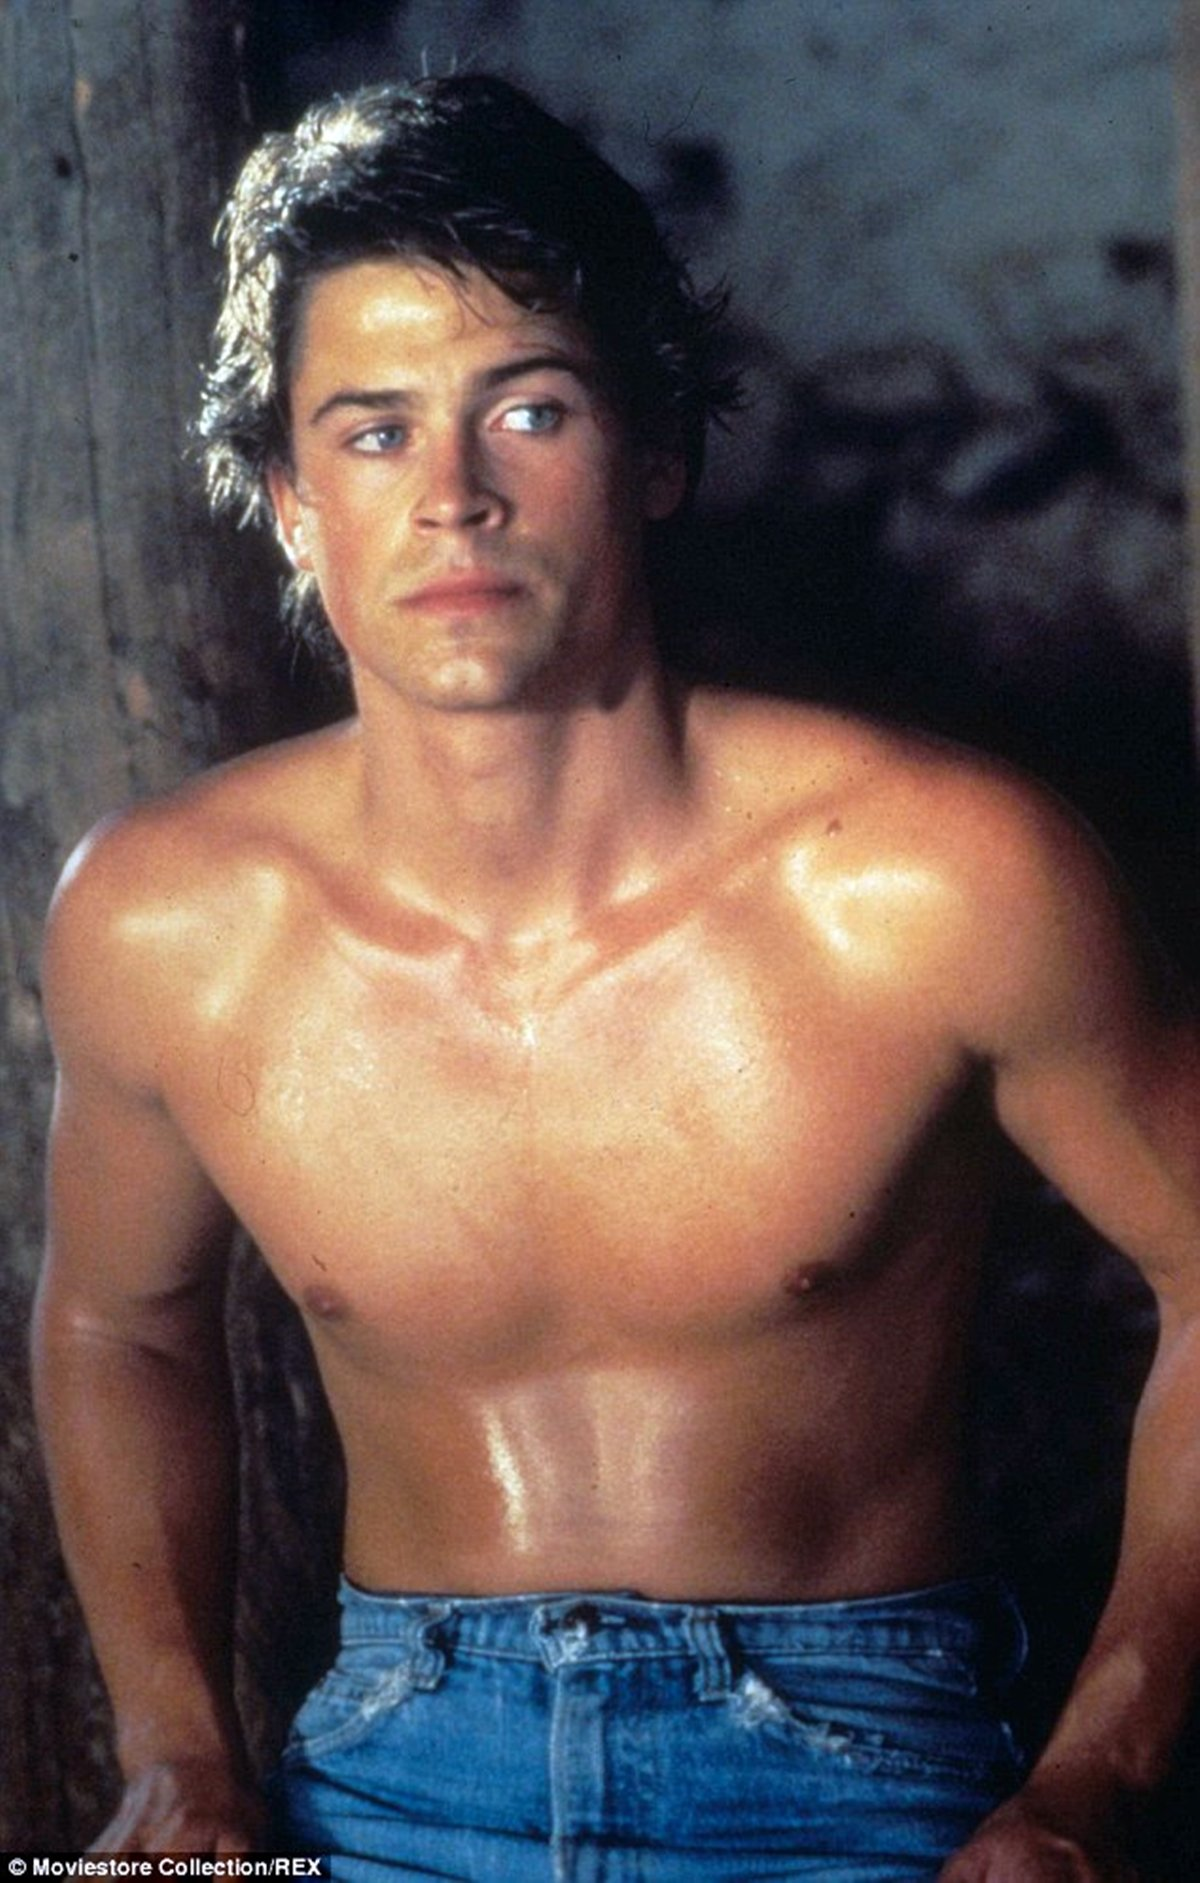 171 The 18 Hottest Photos Of Hollywood Males You've EVER Seen!